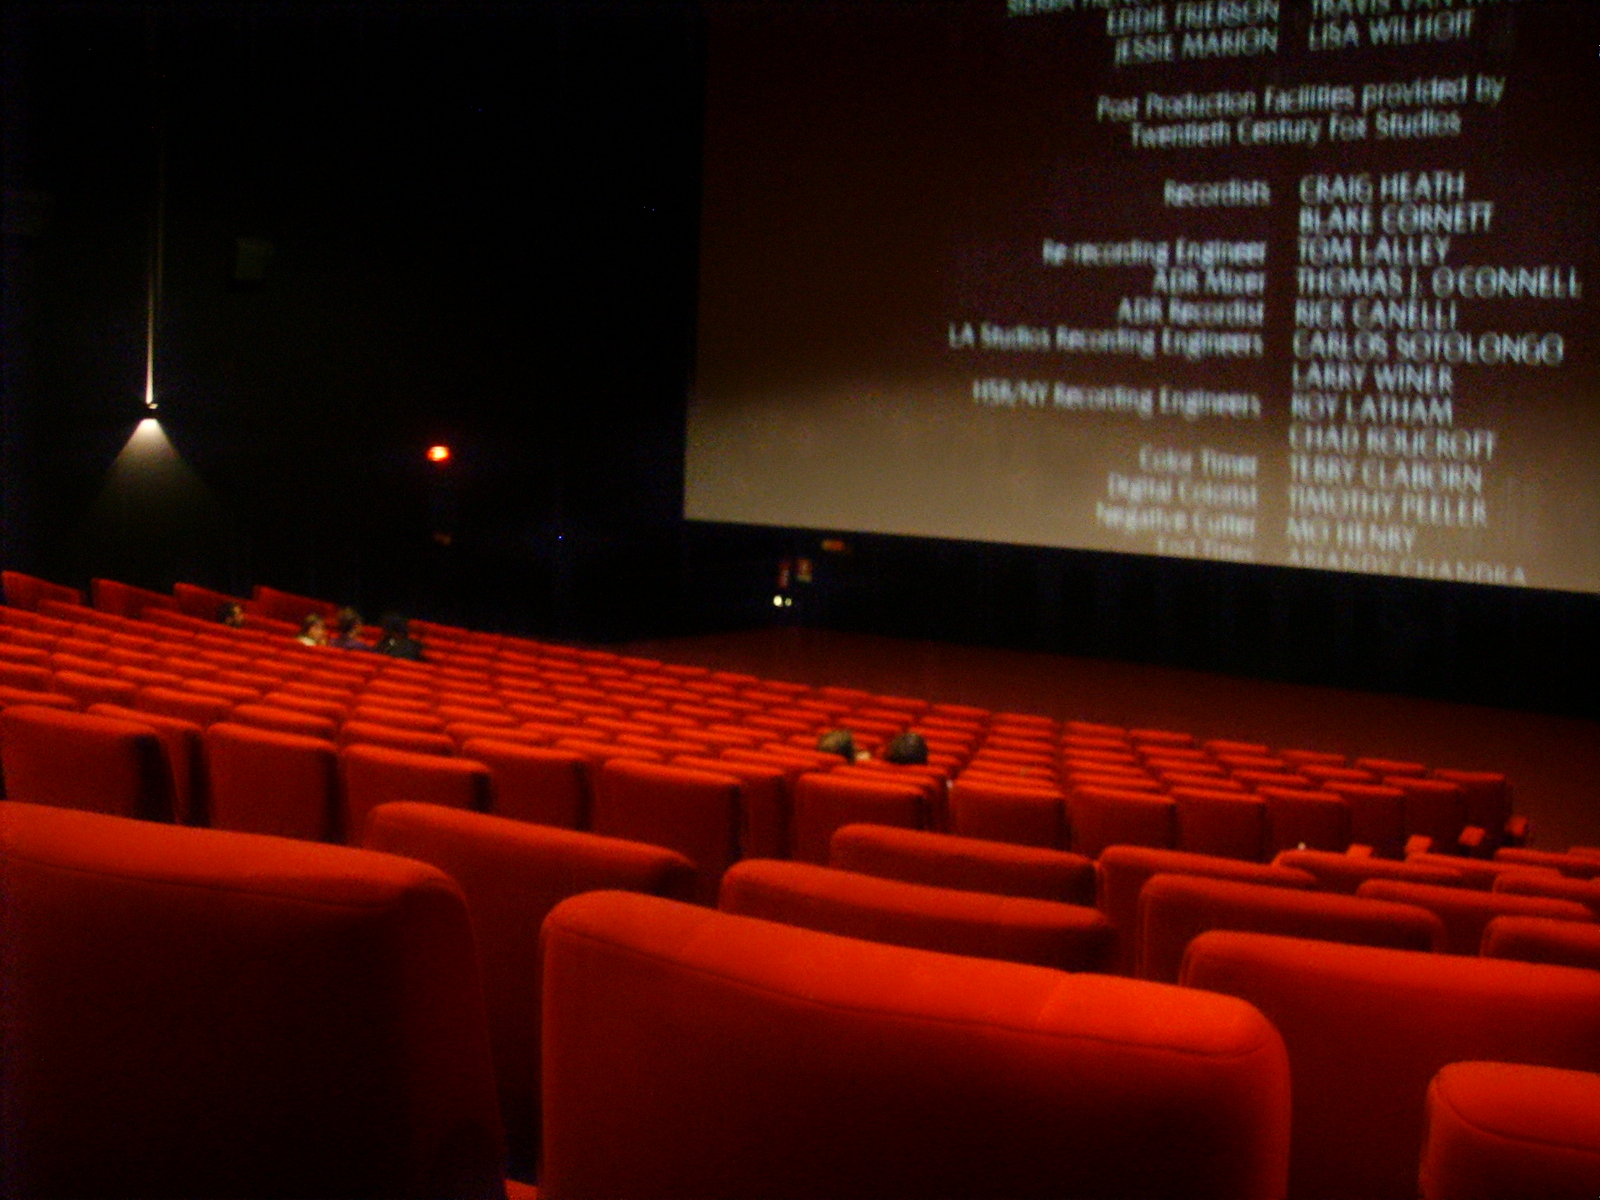 Concerto Vasco Al Cinema Crollo Al Cinema Persi 14 Milioni Di Ingressi In Un Anno